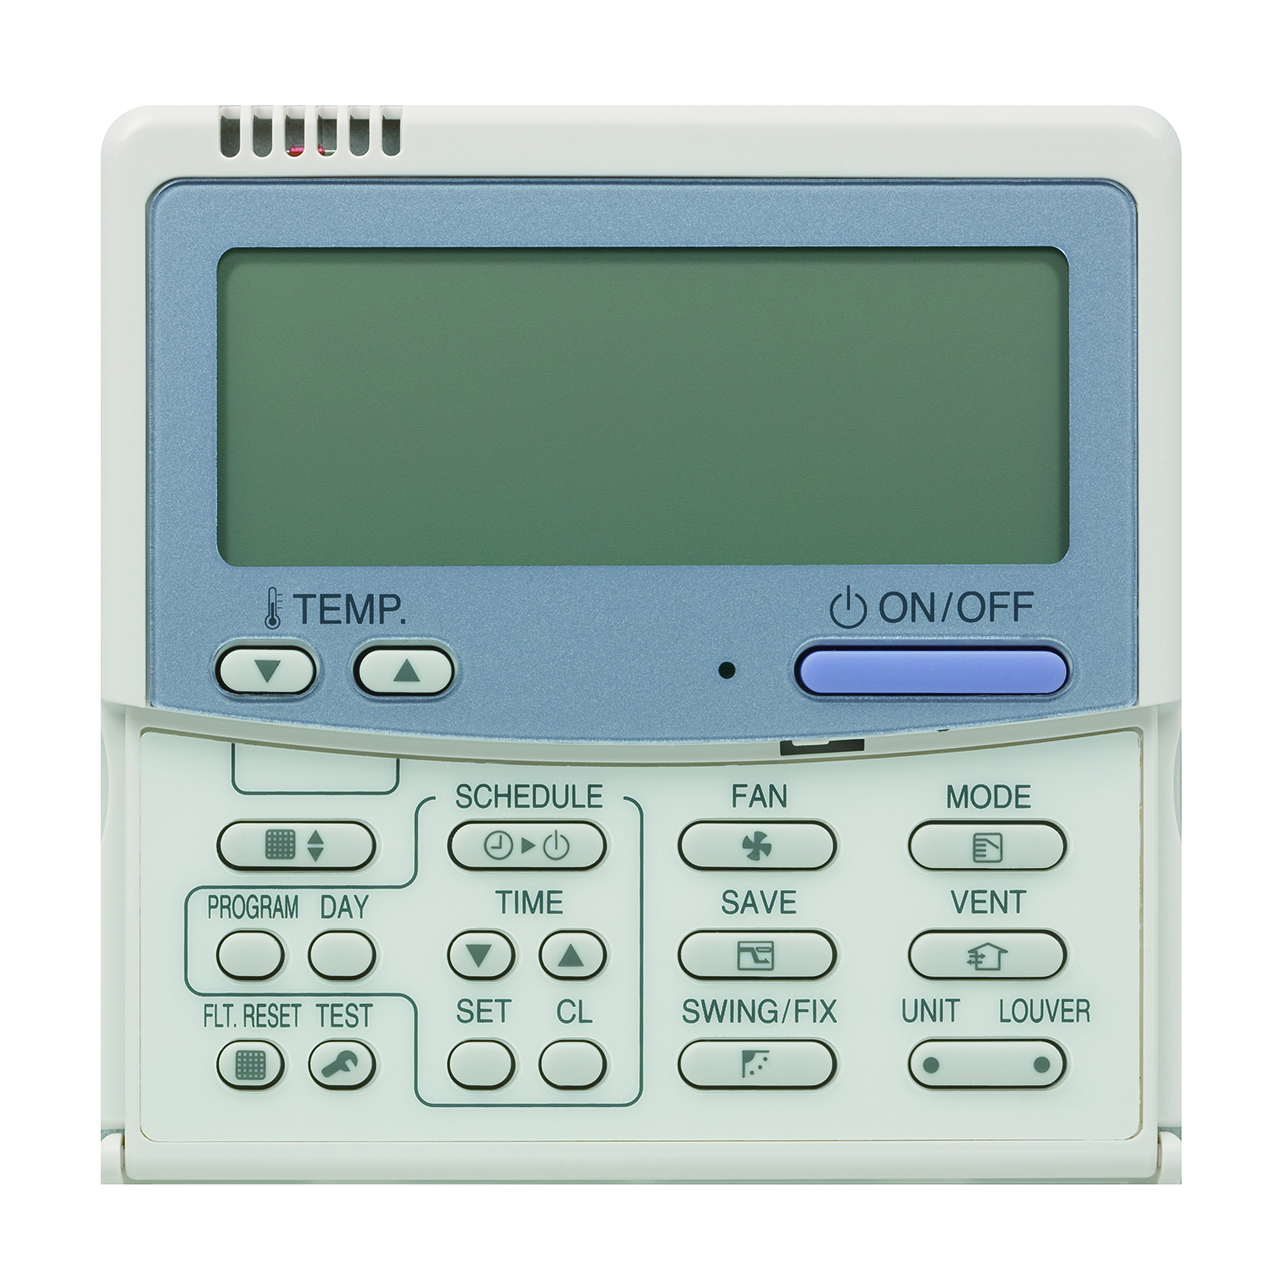 carrier-RBC-AMT41UL-vrf-programmable-wired-remote-controller